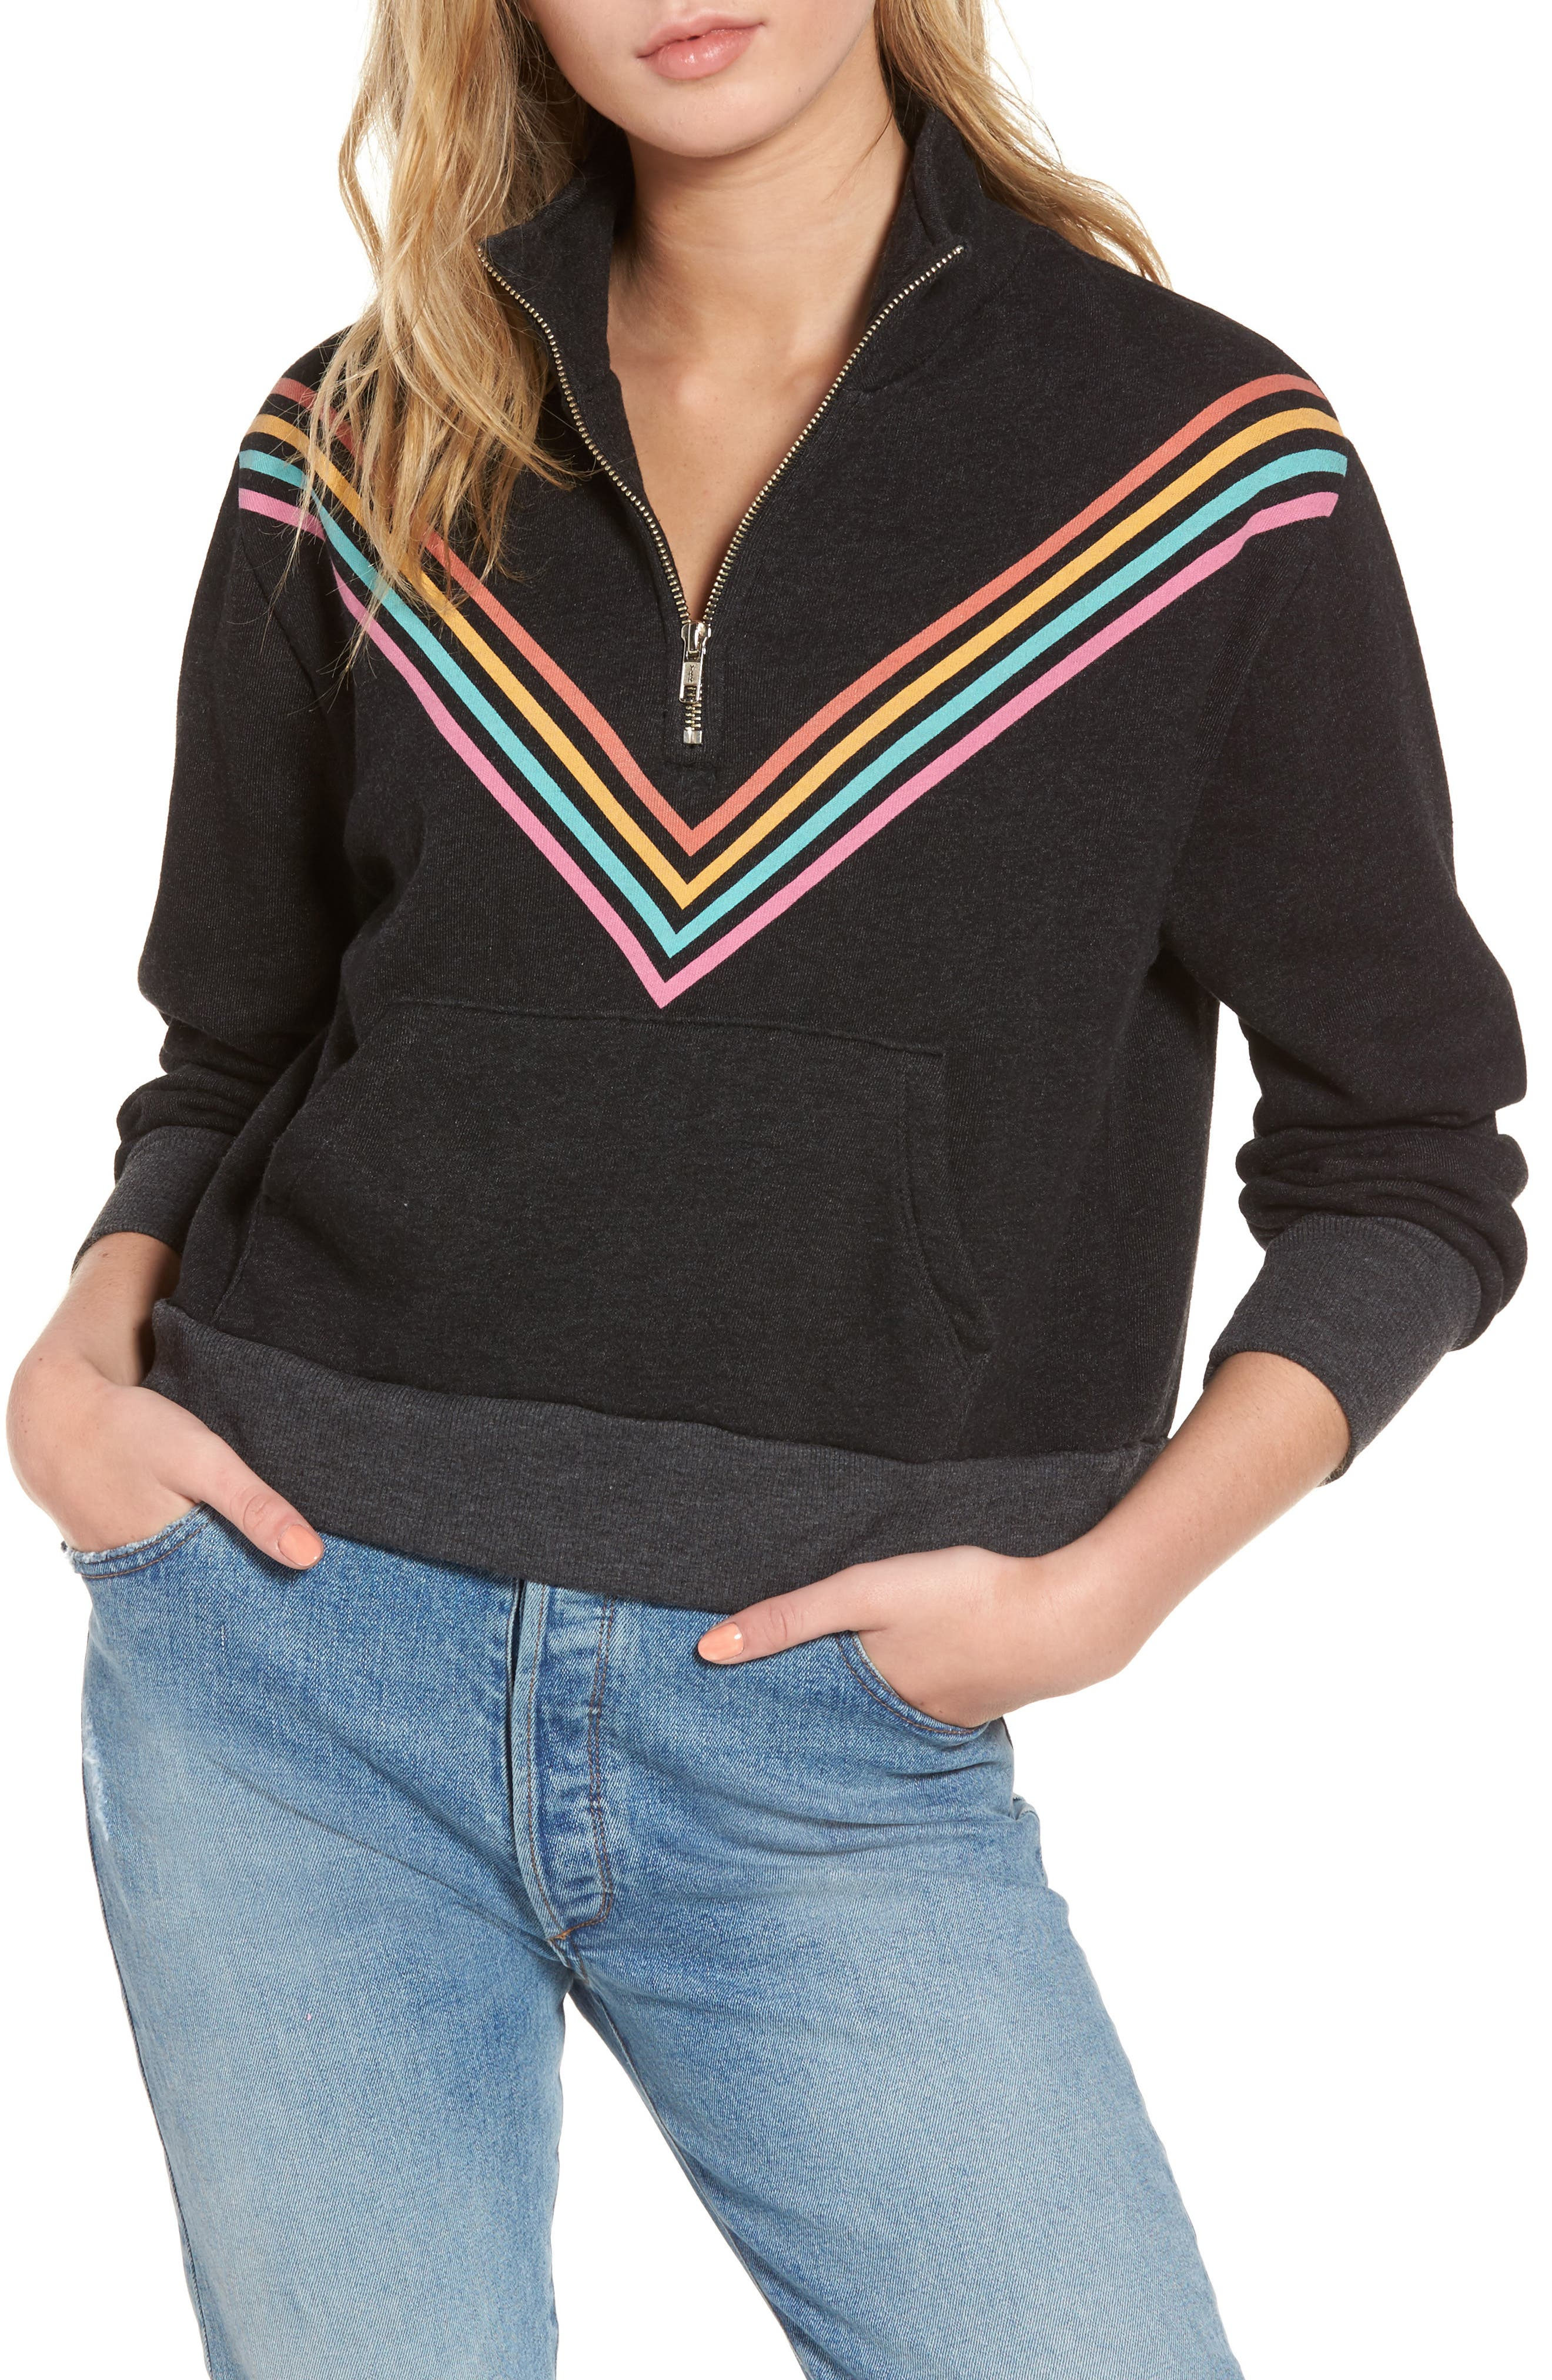 '80s Track Star Soto Warm-Up Sweatshirt,                             Main thumbnail 1, color,                             Heathered Black